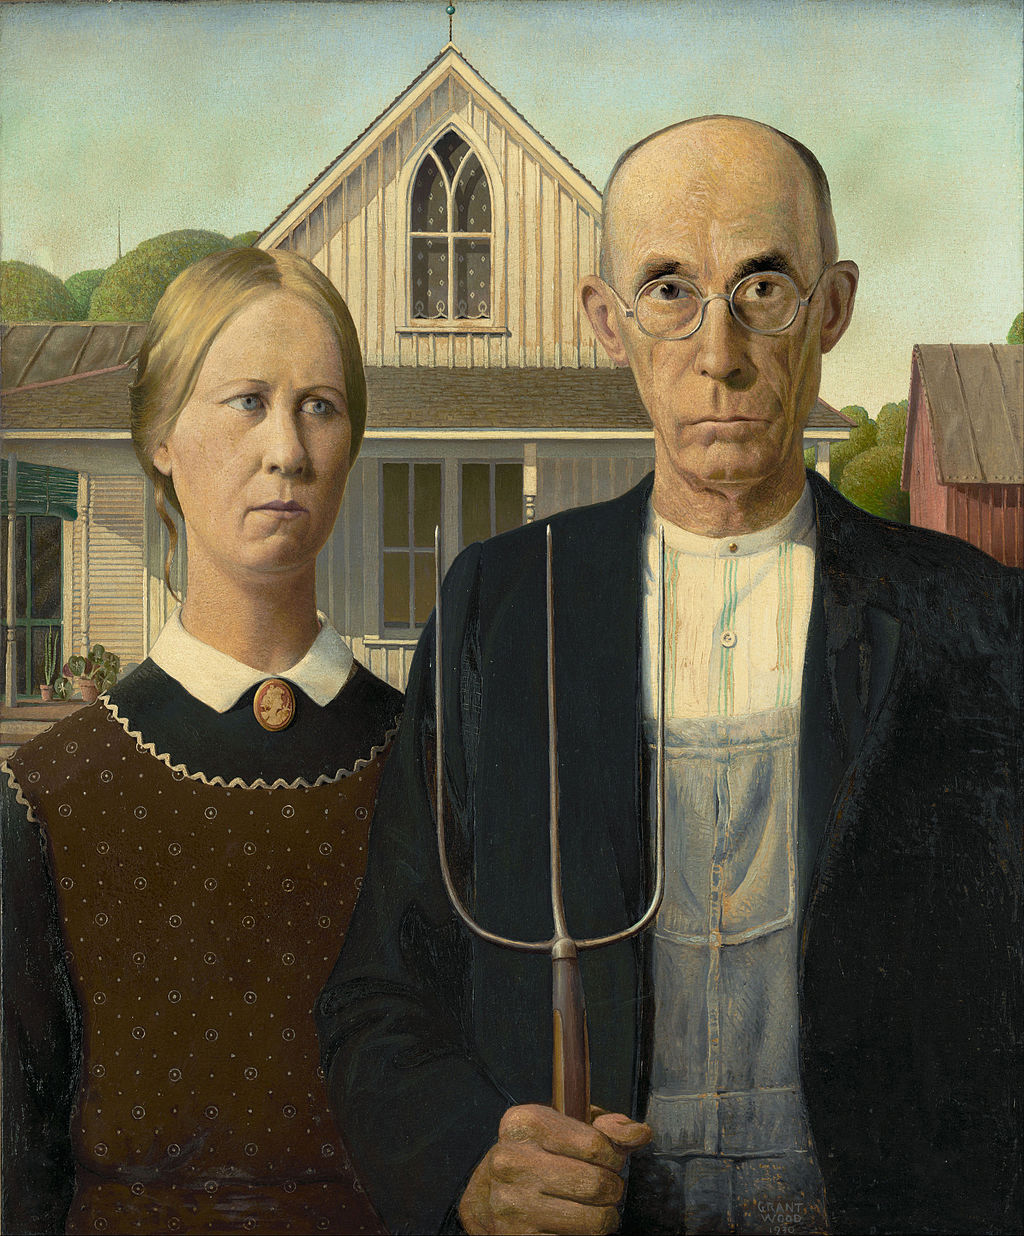 Grant Wood,  American Gothic -  1930